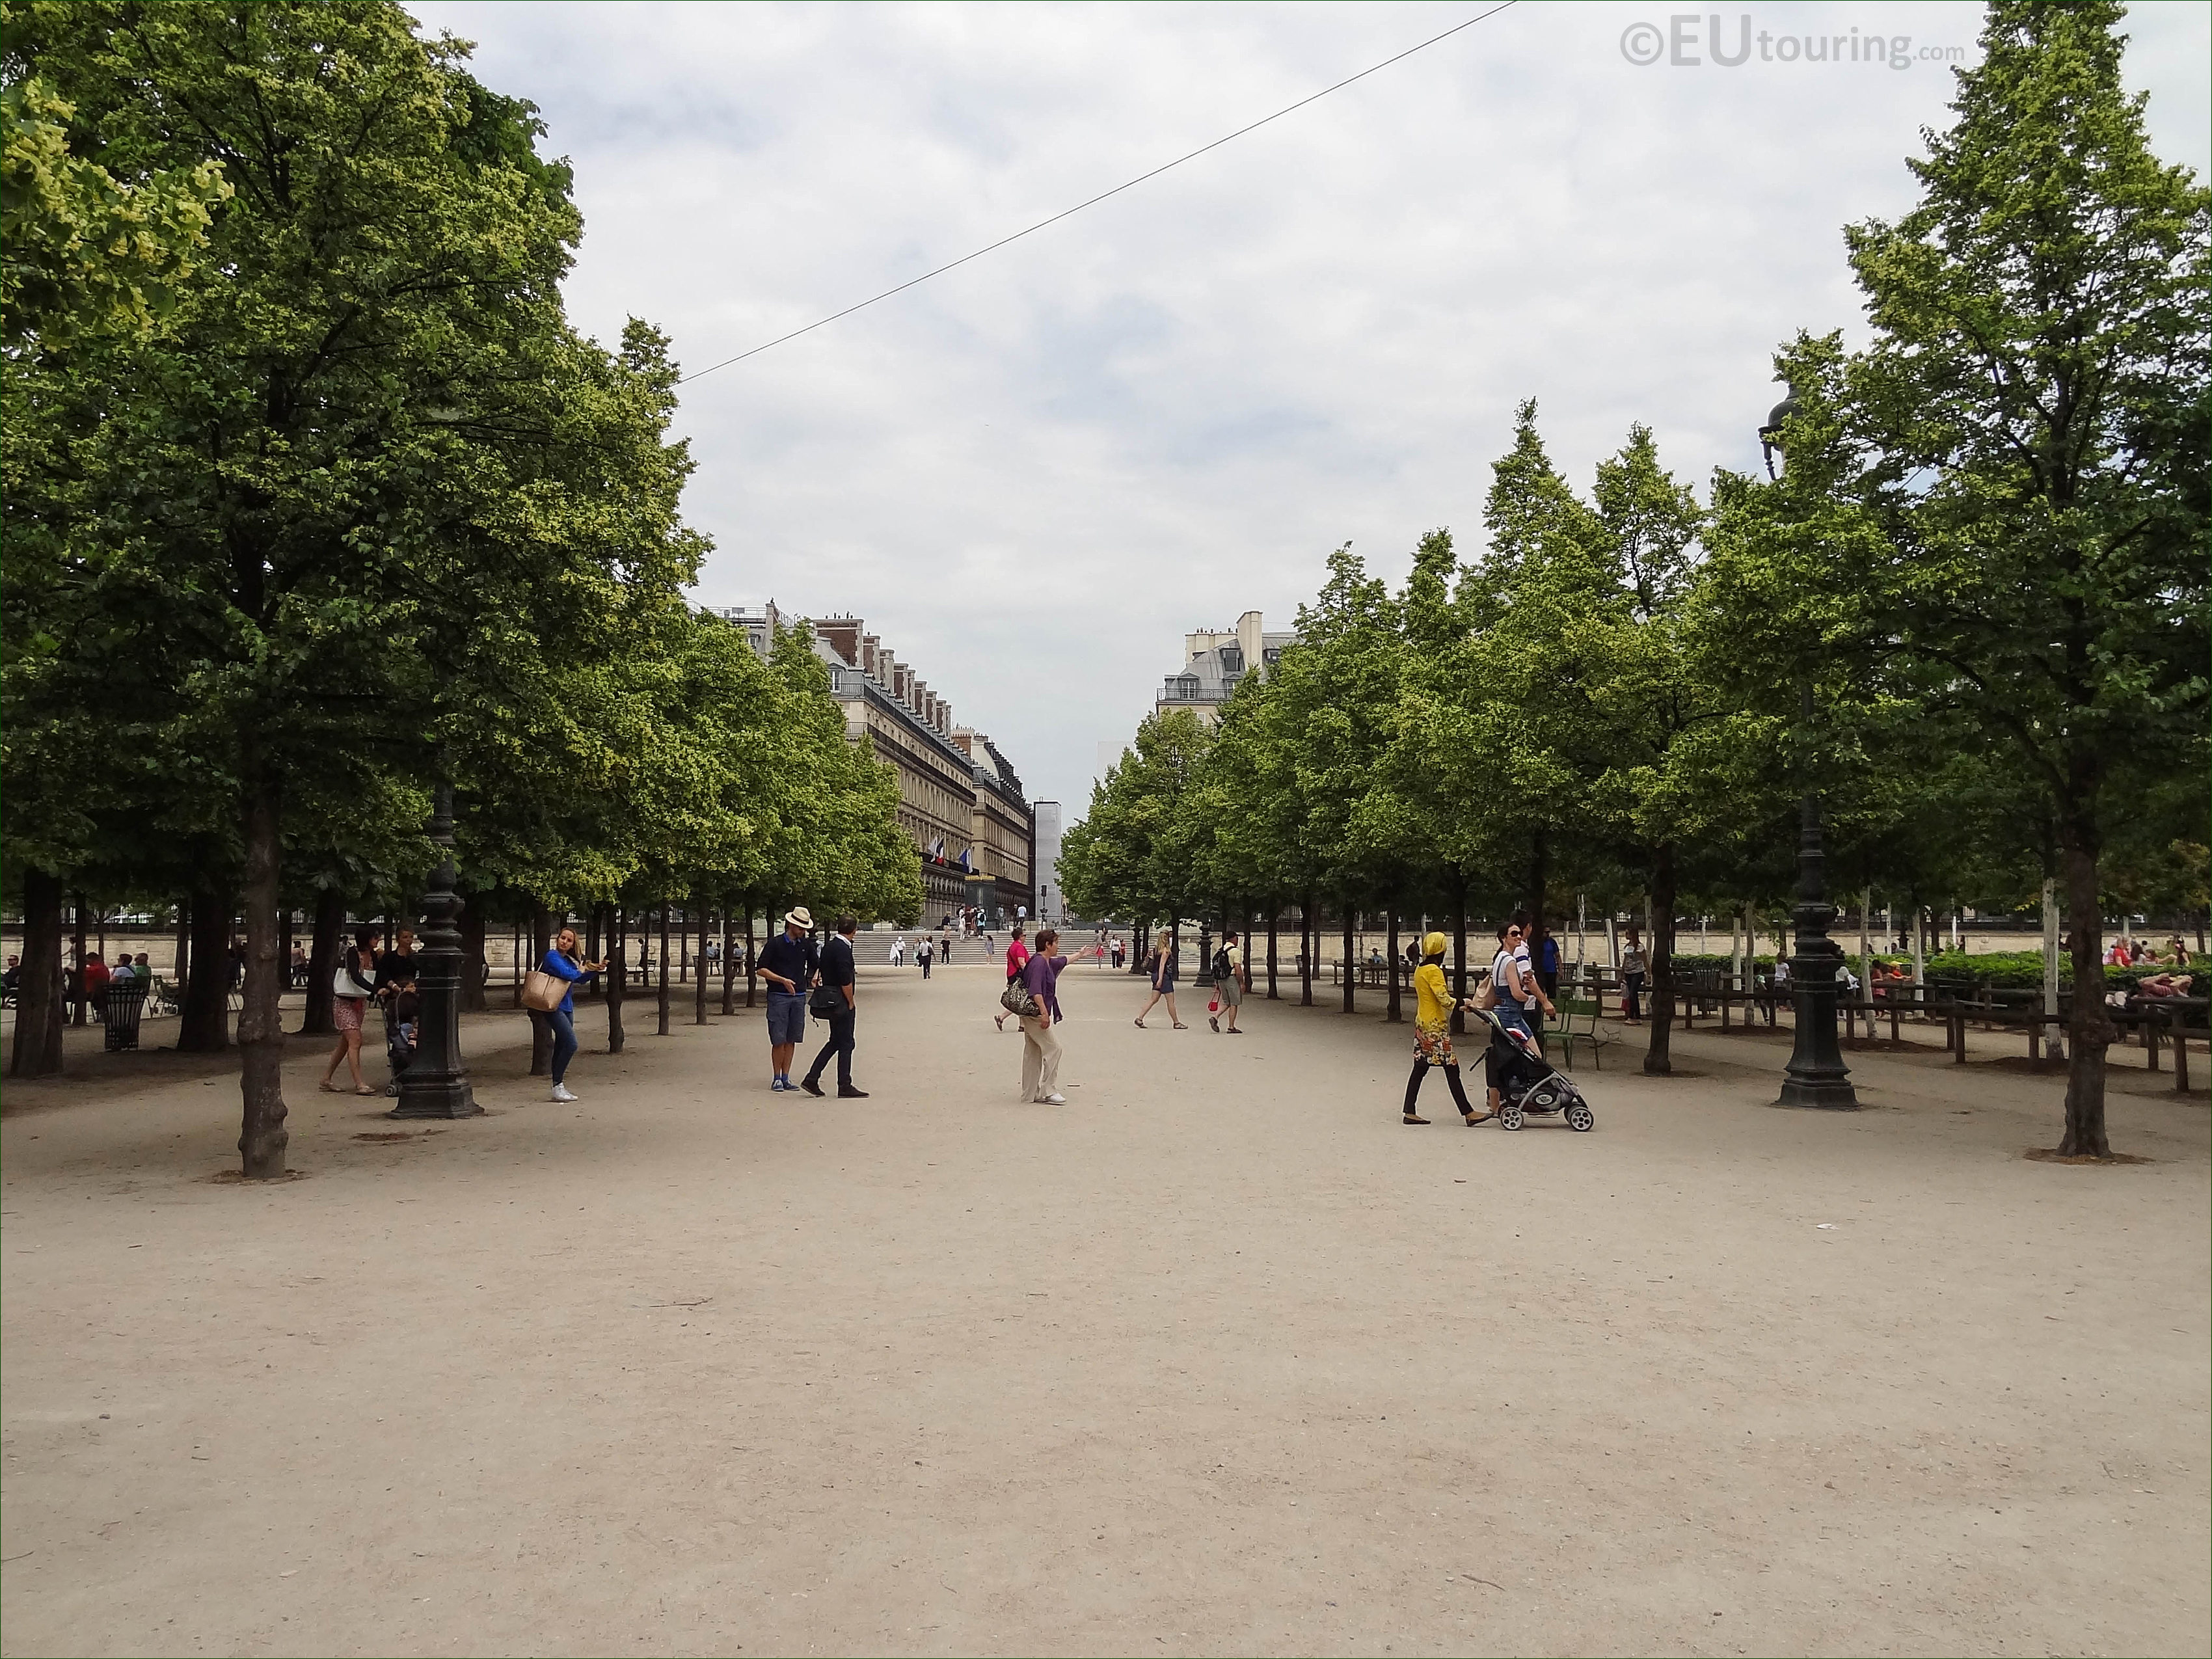 allee de castiglione in jardin des tuileries looking ne. Black Bedroom Furniture Sets. Home Design Ideas